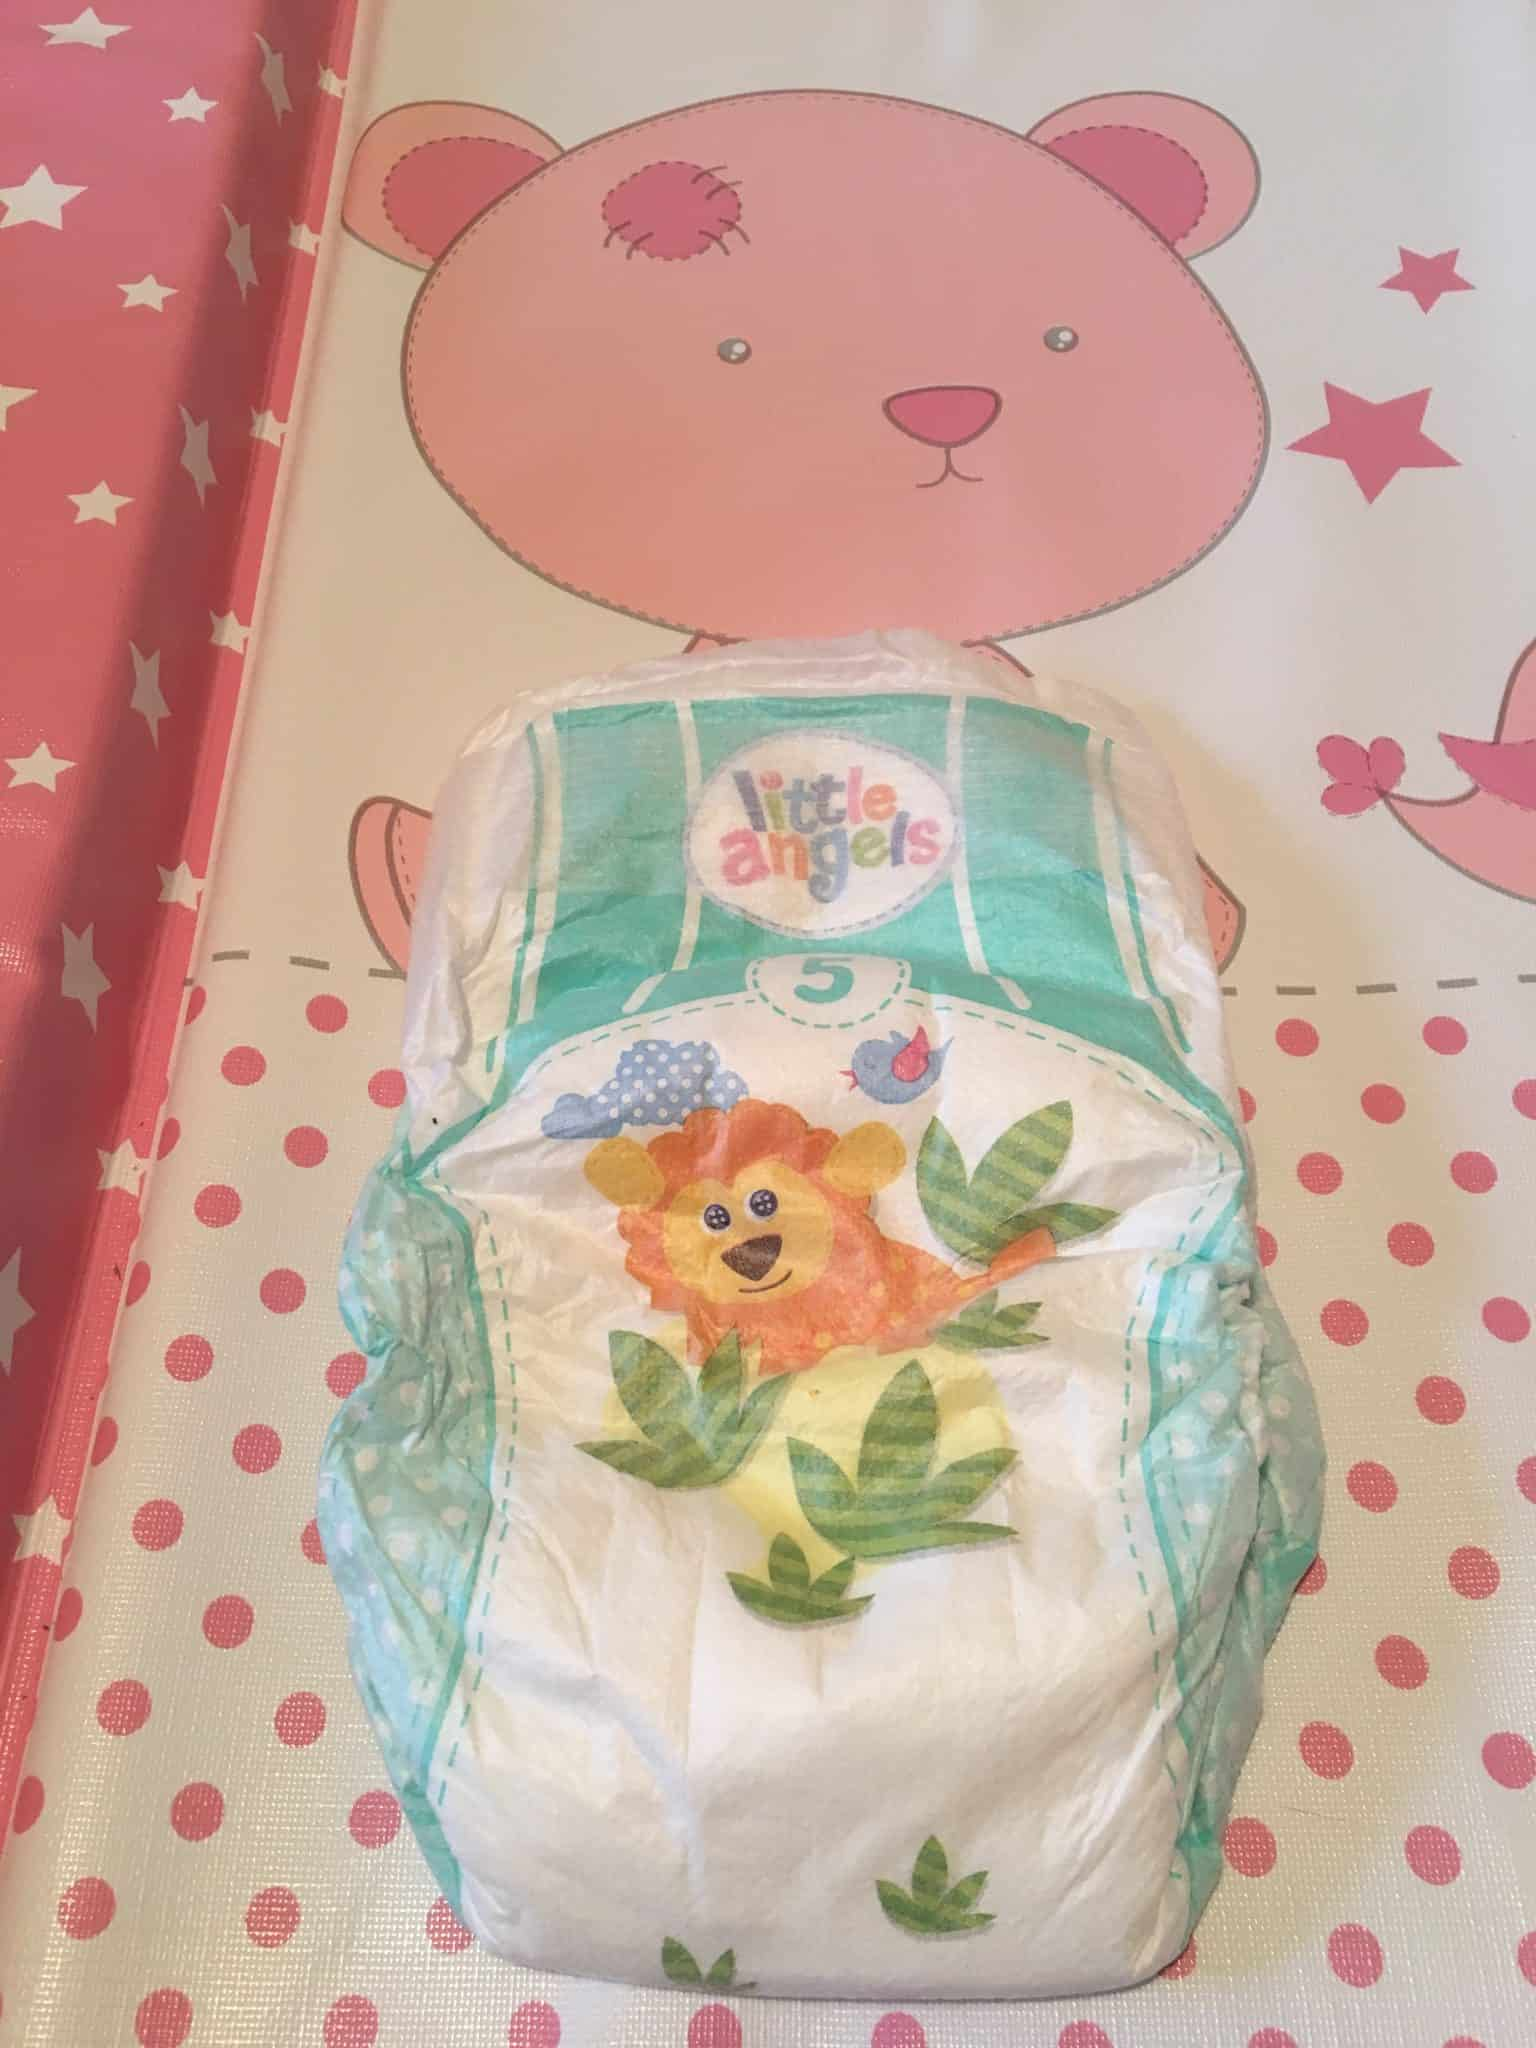 Little Angels Comfort & Protect Nappies from Asda